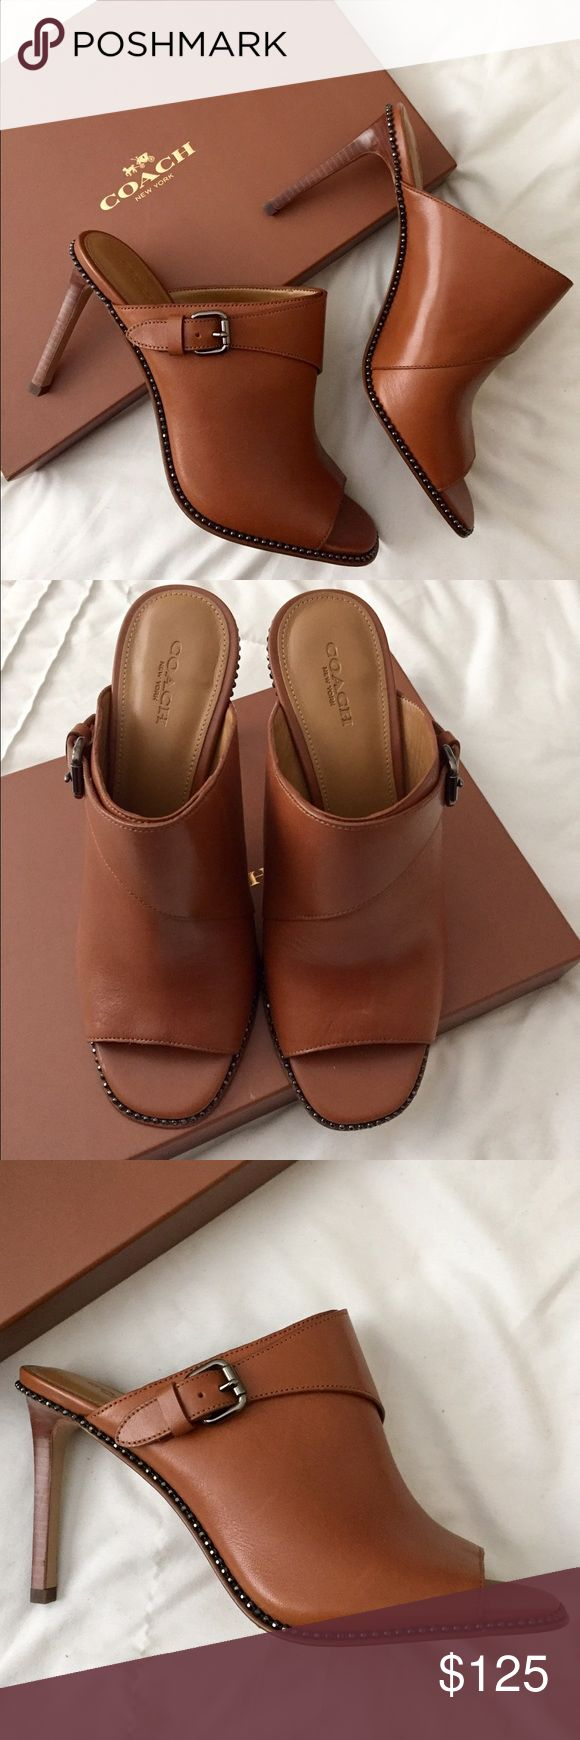 Coach Luggage Maple slides Gorgeous and comfortable Coach Luggage Maple slides. Size 8.5, new in box Coach Shoes Heels